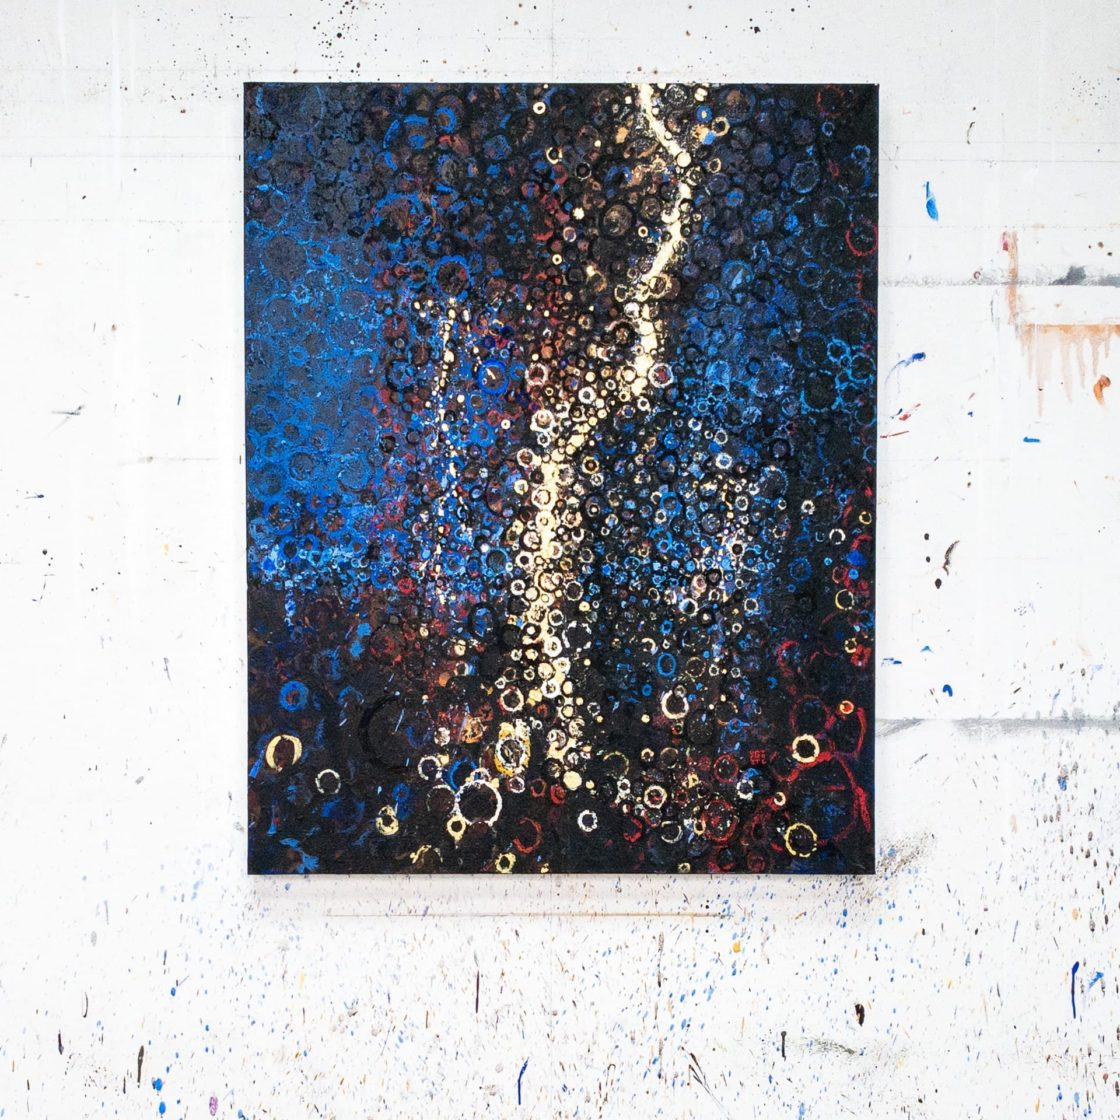 Rainmaker by Randall Stoltzfus on the wall of the artist's Brooklyn studio